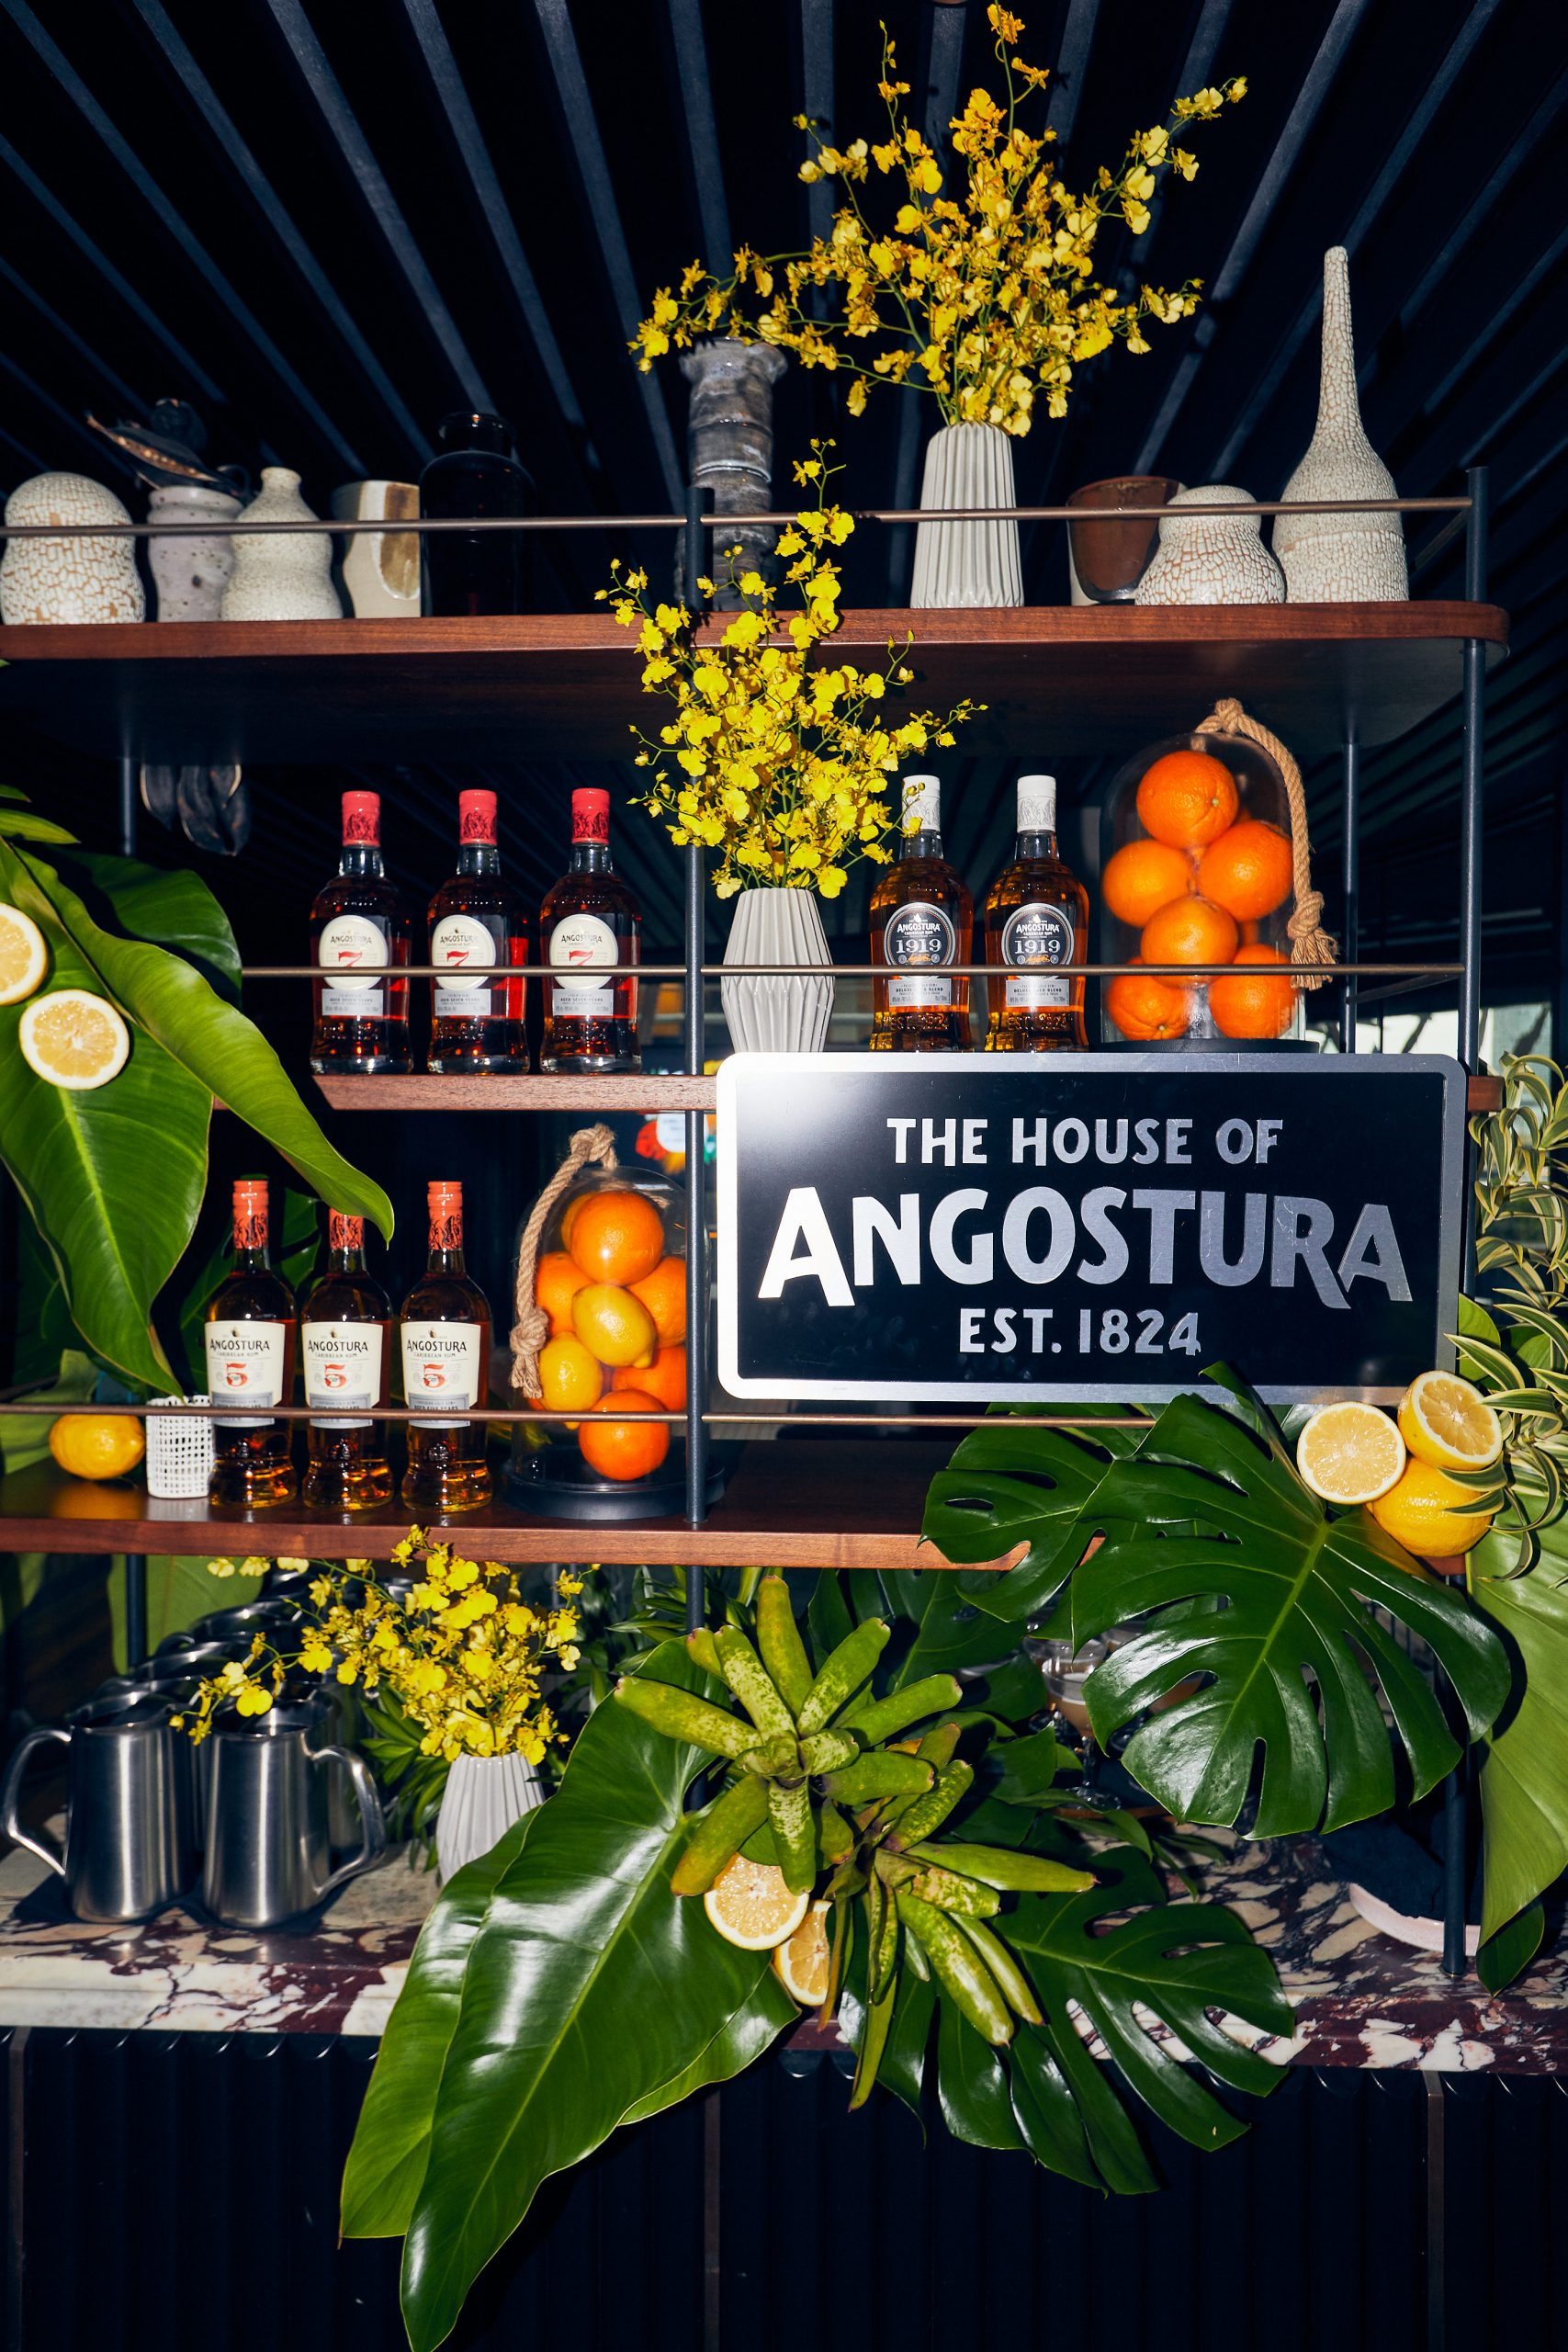 The House of Angostura